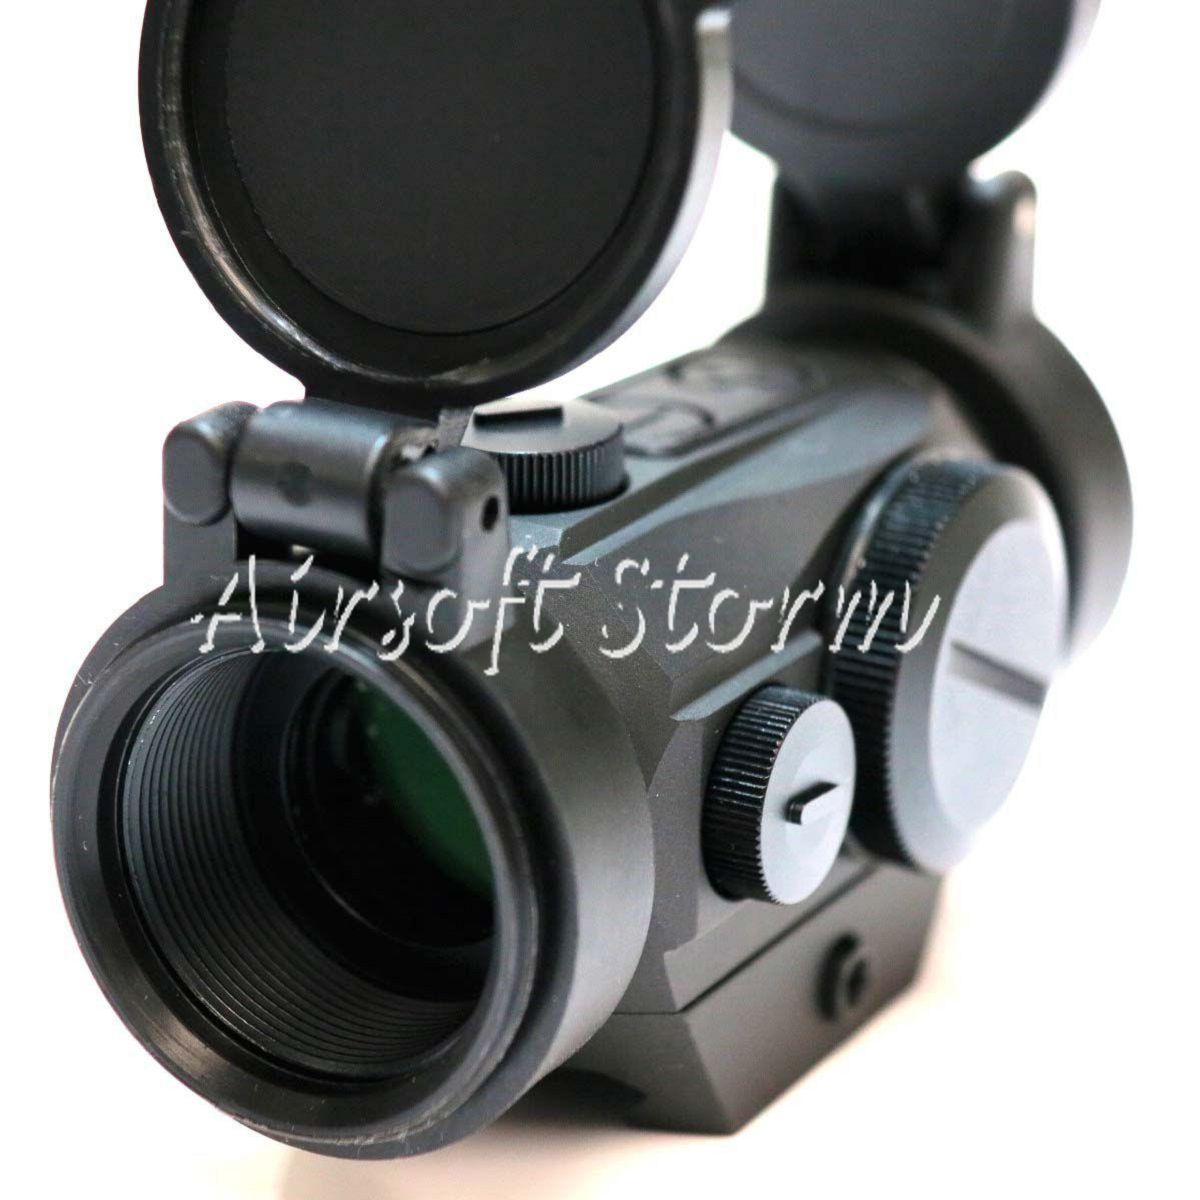 SWAT Gear Tactical Holosun PARALOW HS503FL Aluminum Circle Dot Sight - Click Image to Close